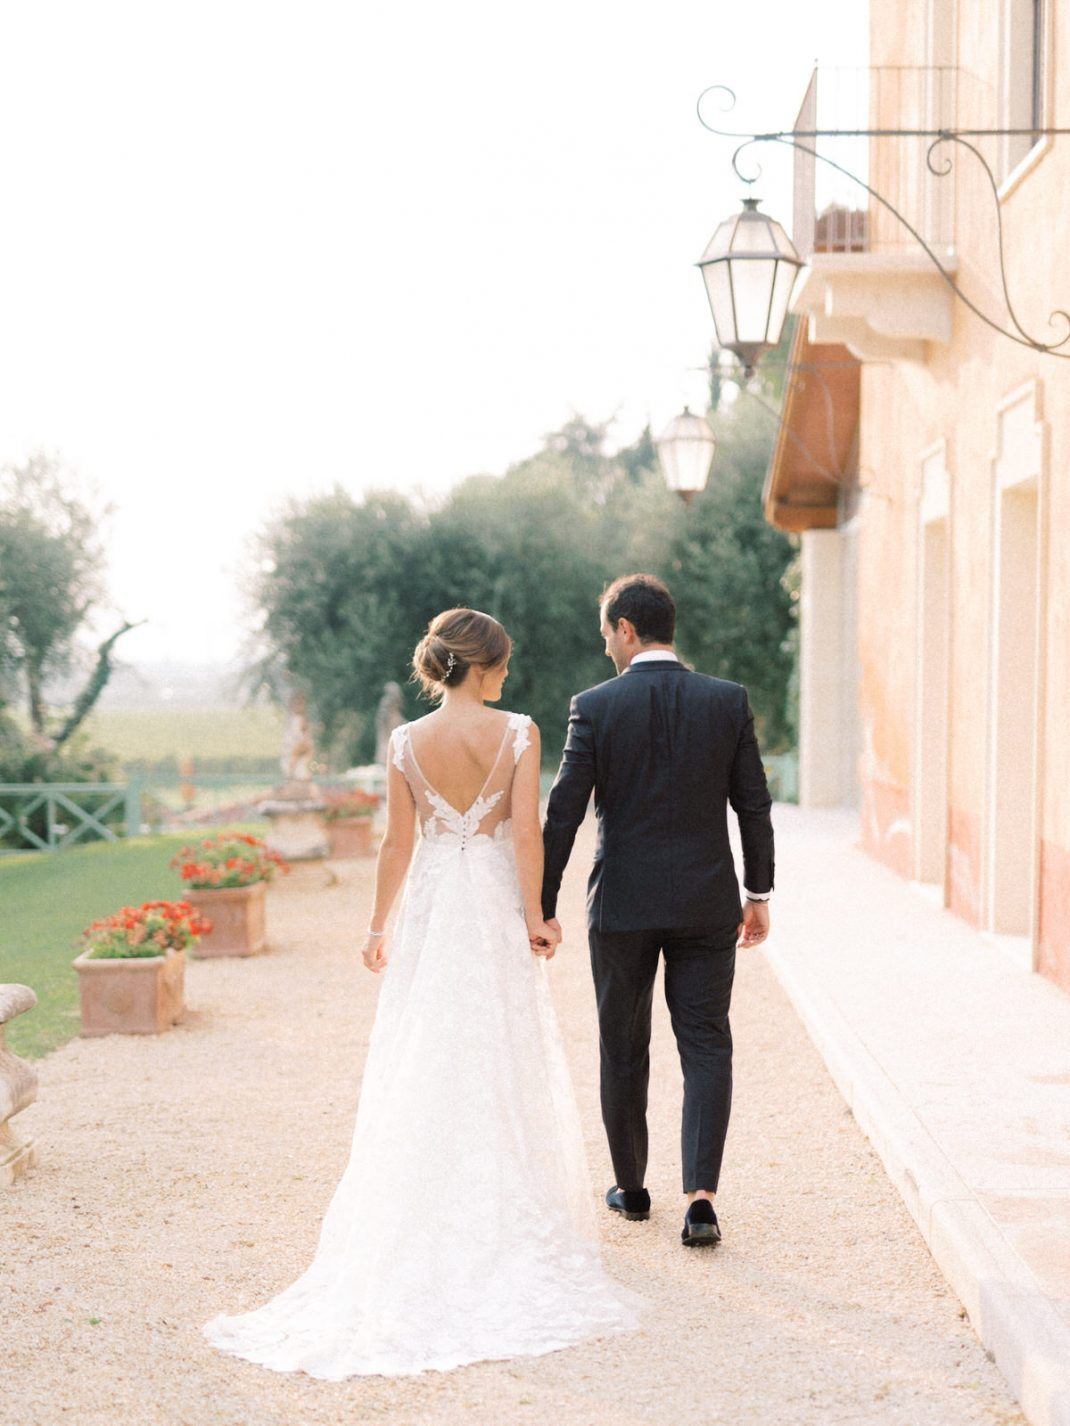 Wedding Photographer Italy - Villa Cordevigo - Youri Claessens Photography